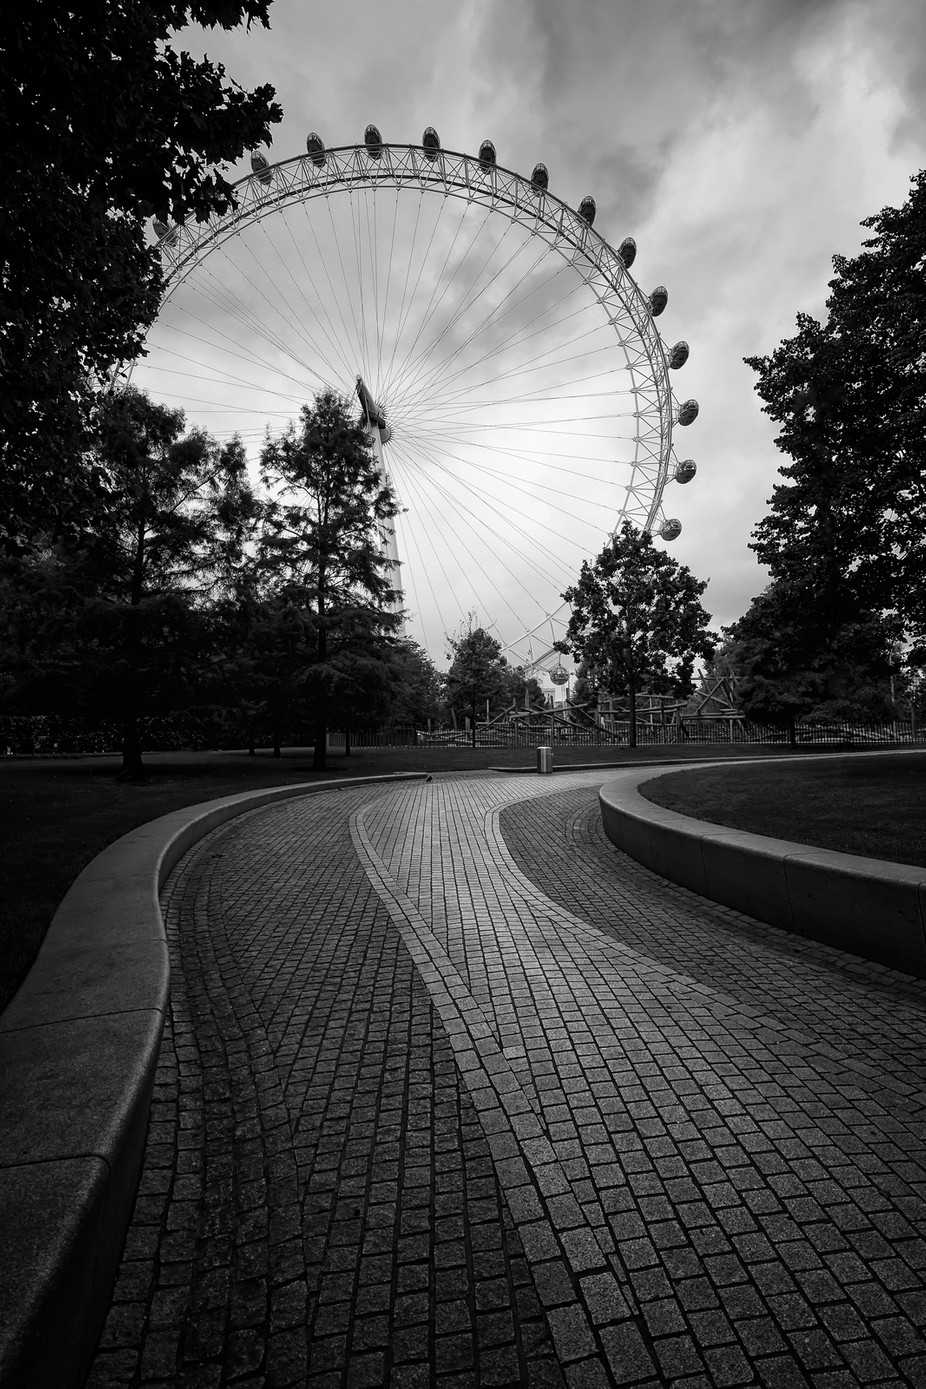 London Eye by MichalCandrak - London Photo Contest